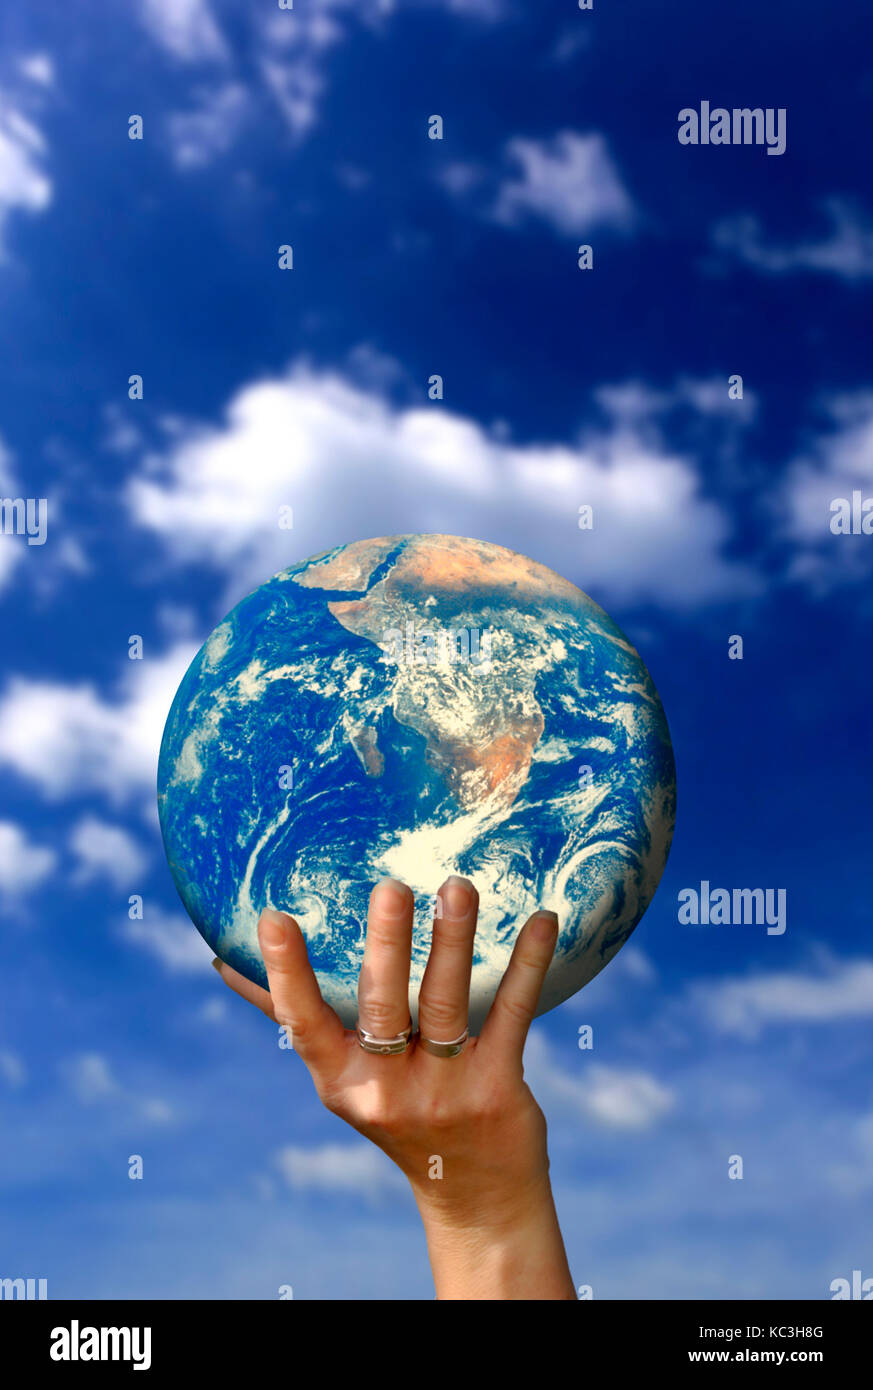 hand holding planet earth, save the planet concept - Stock Image